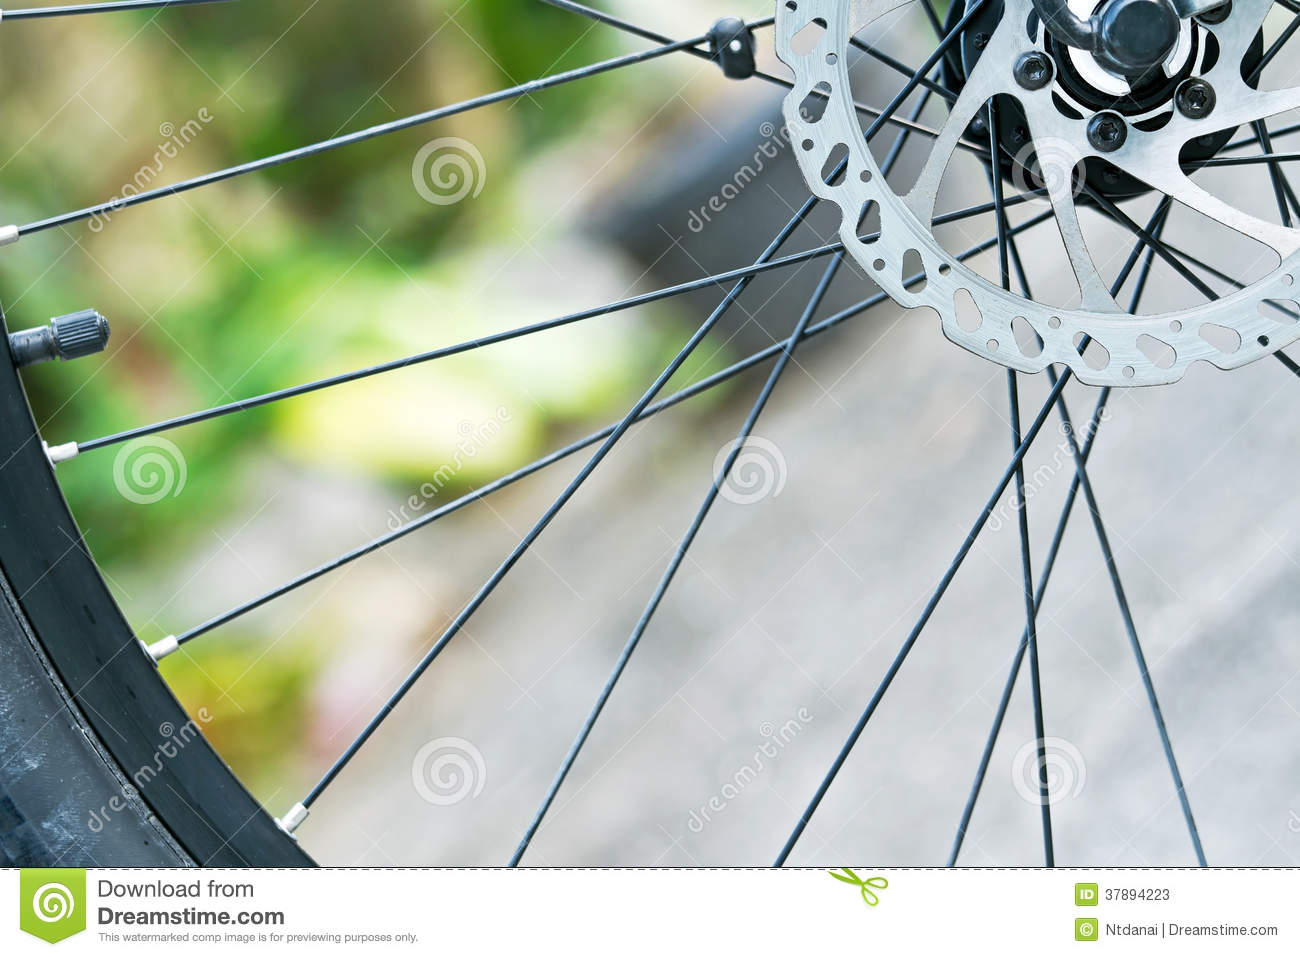 Cycle Shop Business Plan